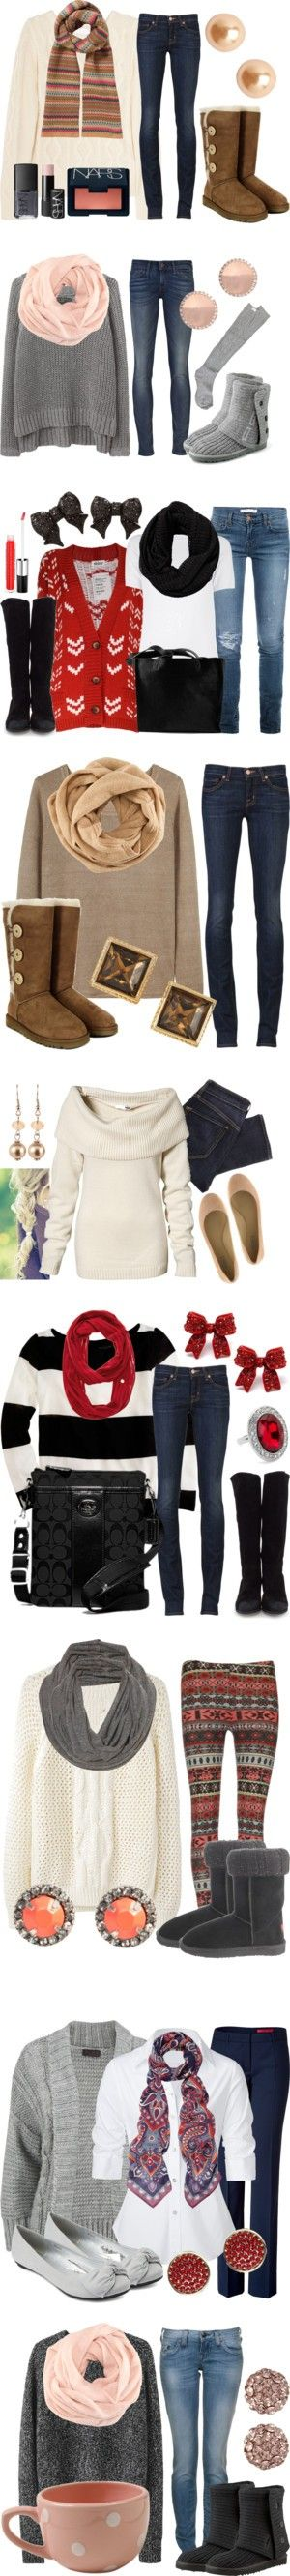 fall outfits- love oversized sweaters!